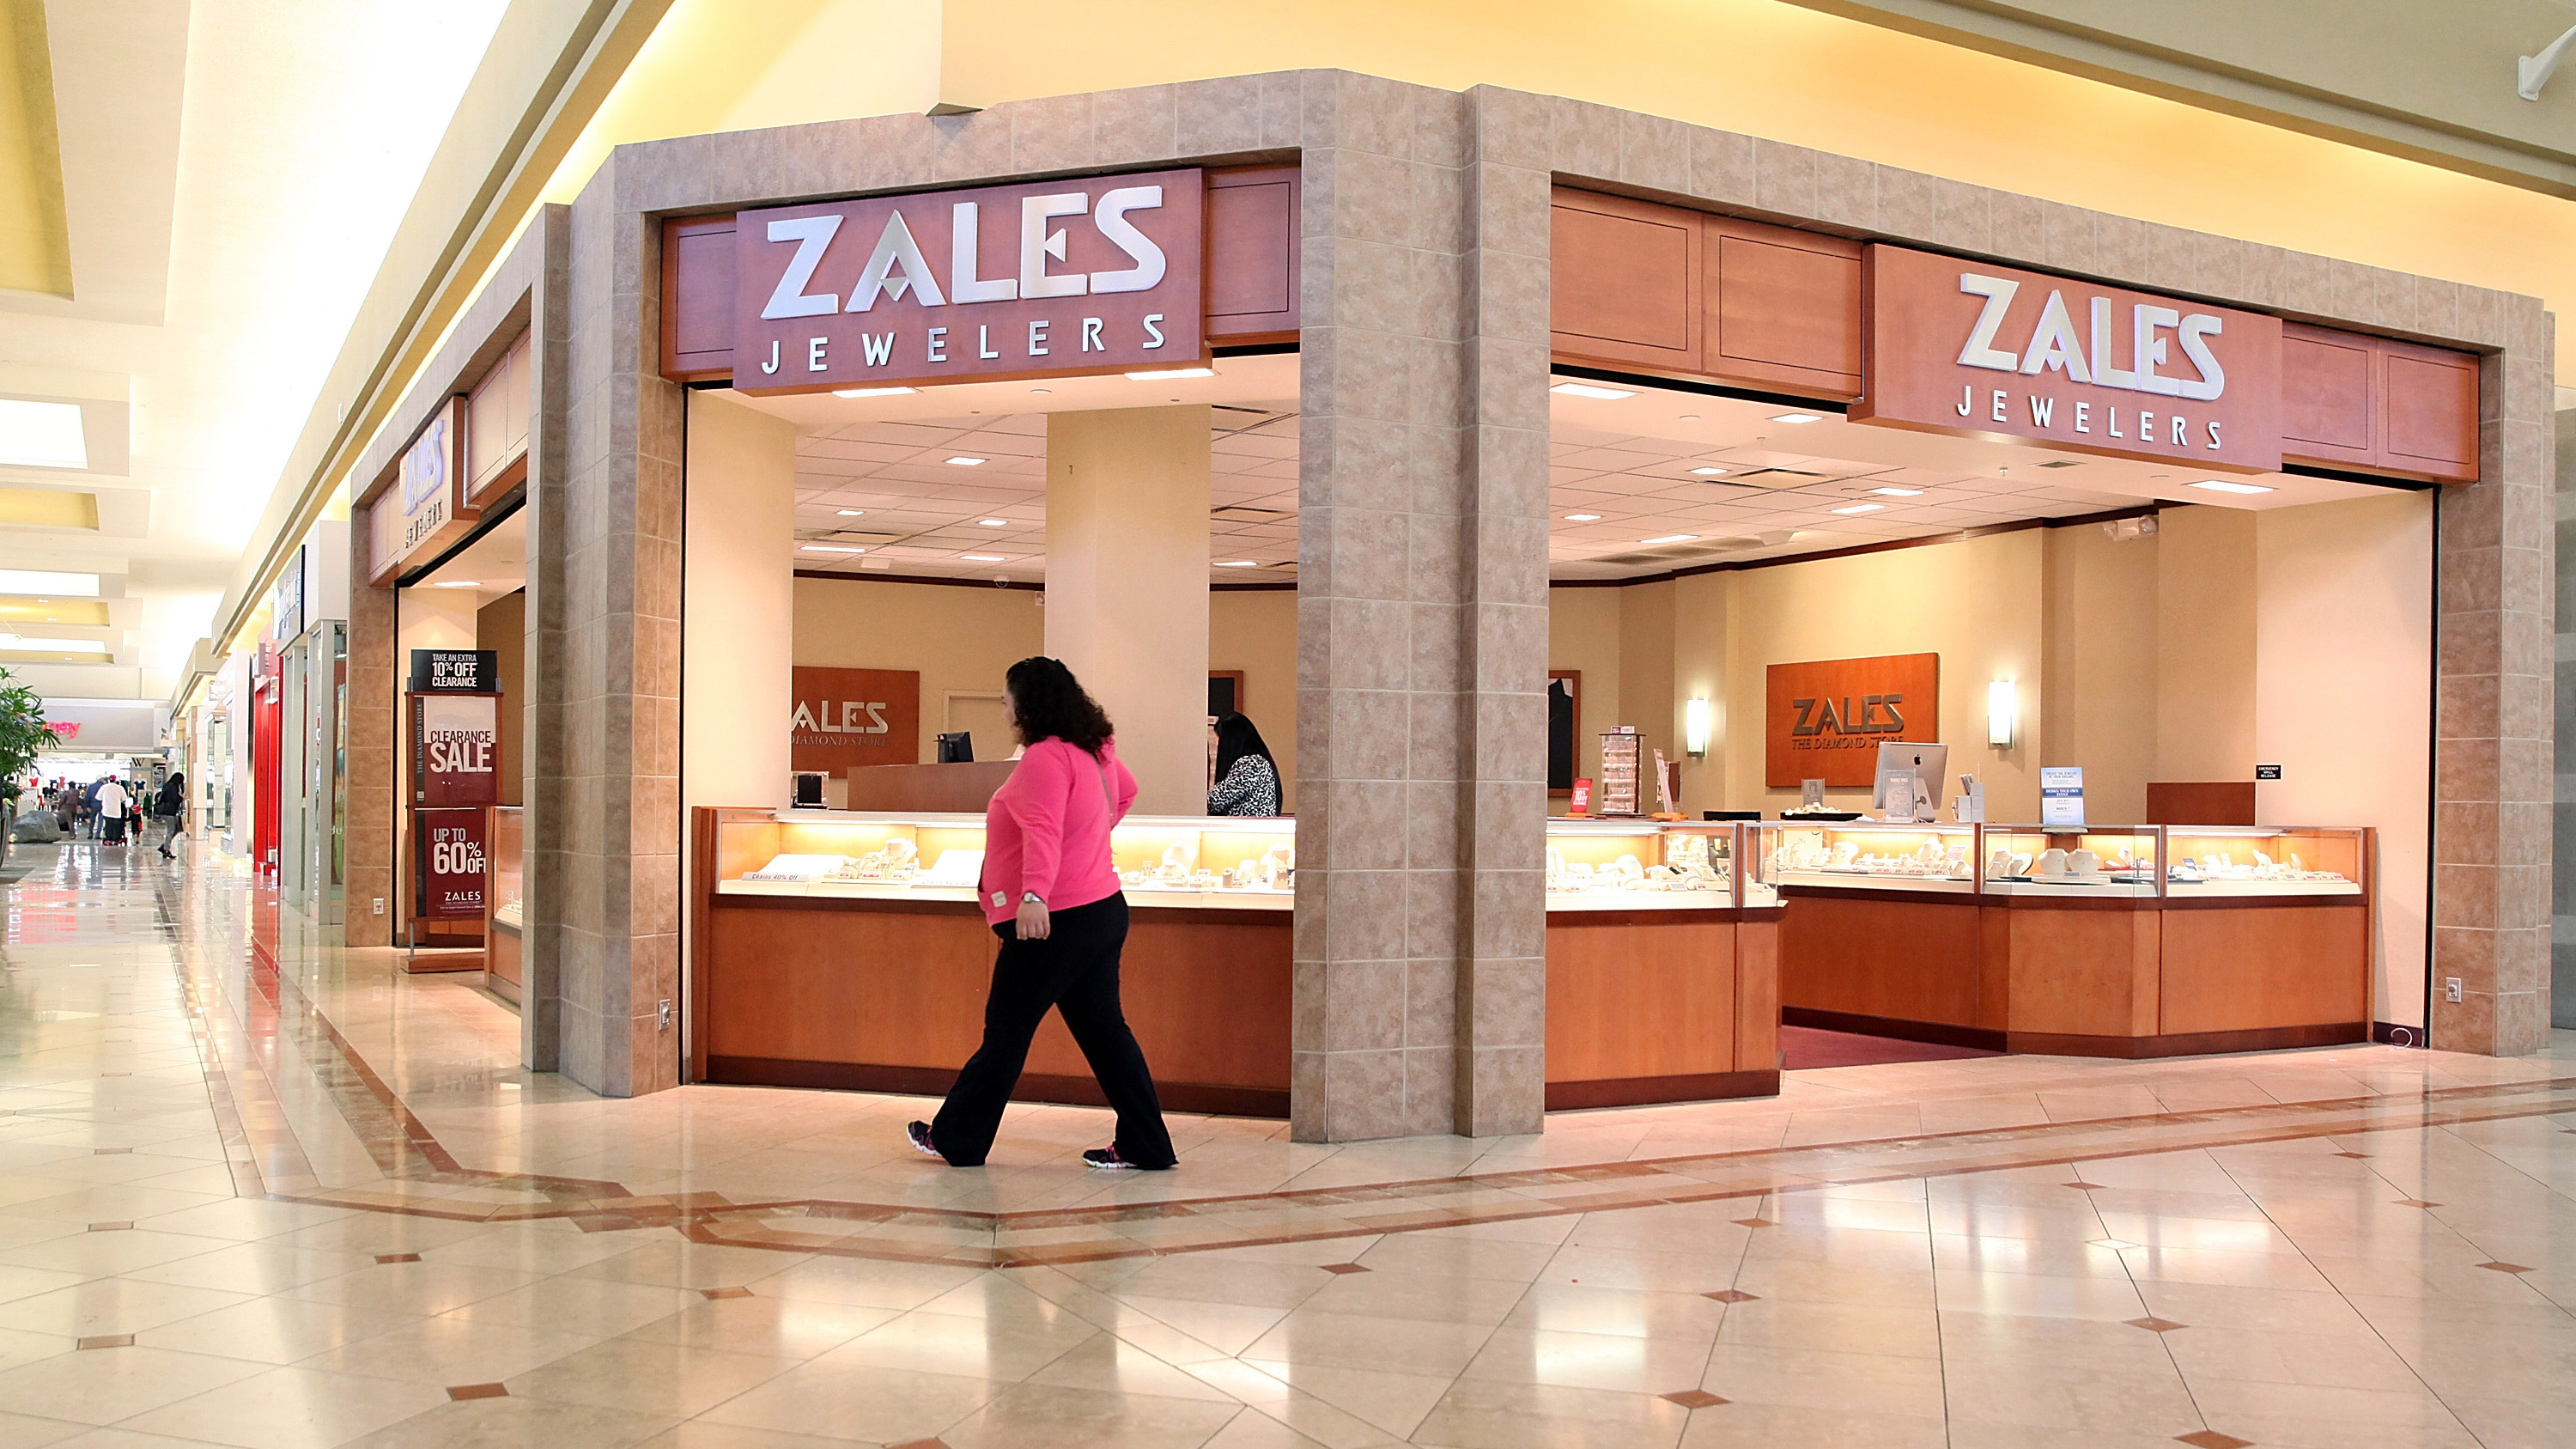 Stock of Kay and Zales' parent climbs over 40% on holiday sales growth